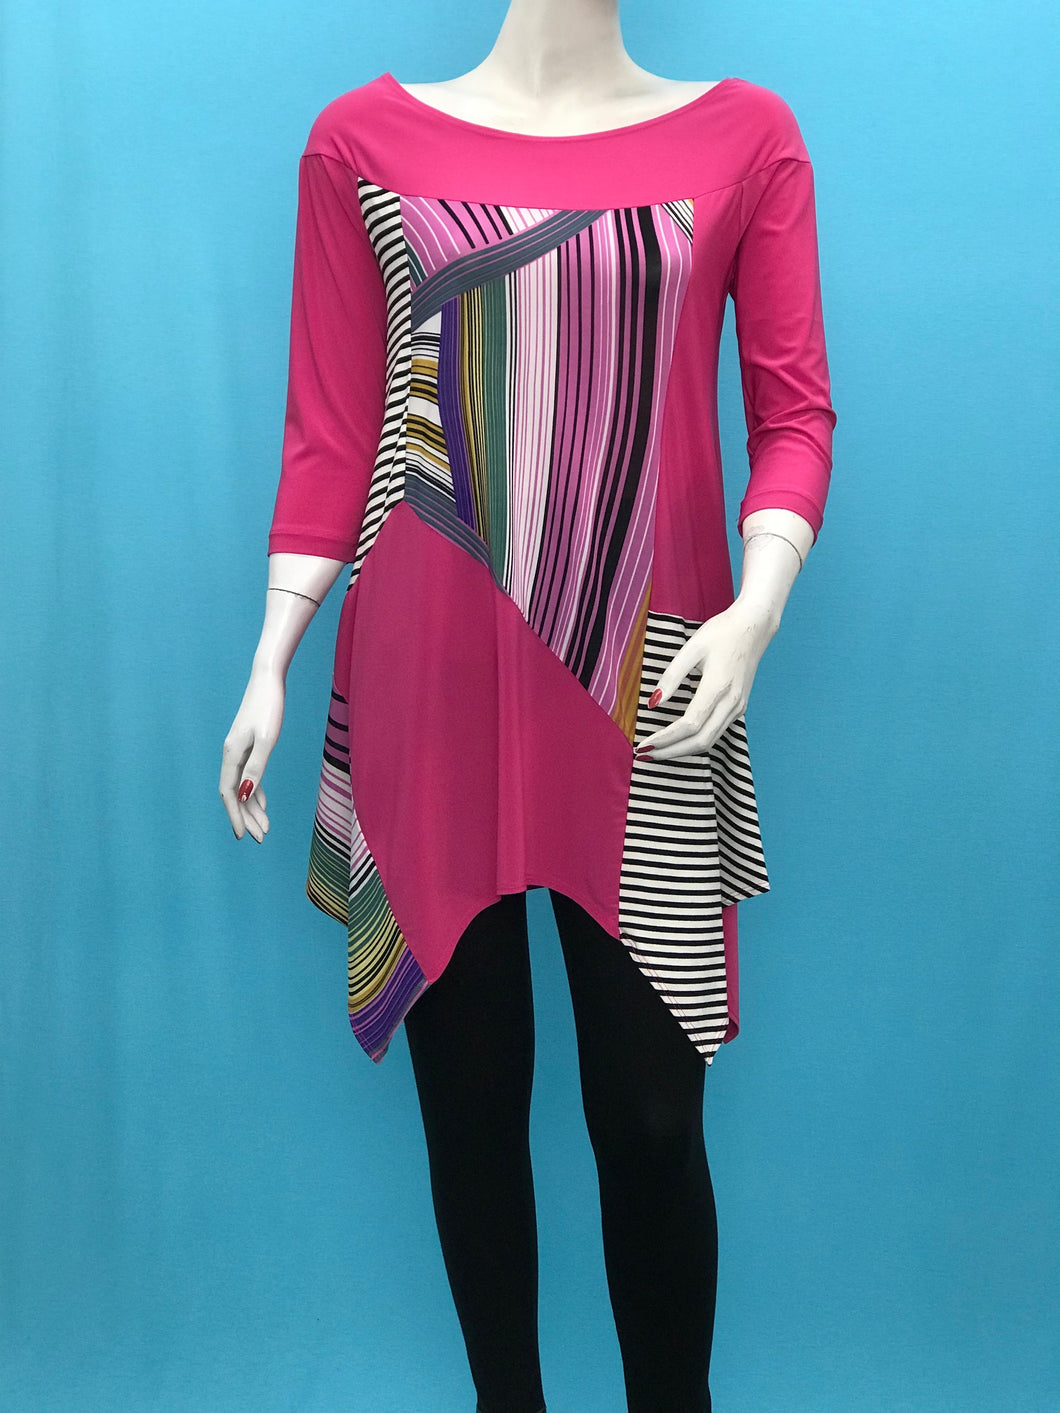 A Line Long Sleeve Geometric Print Color Block Tunic with Black White Stripe - americanfashion2